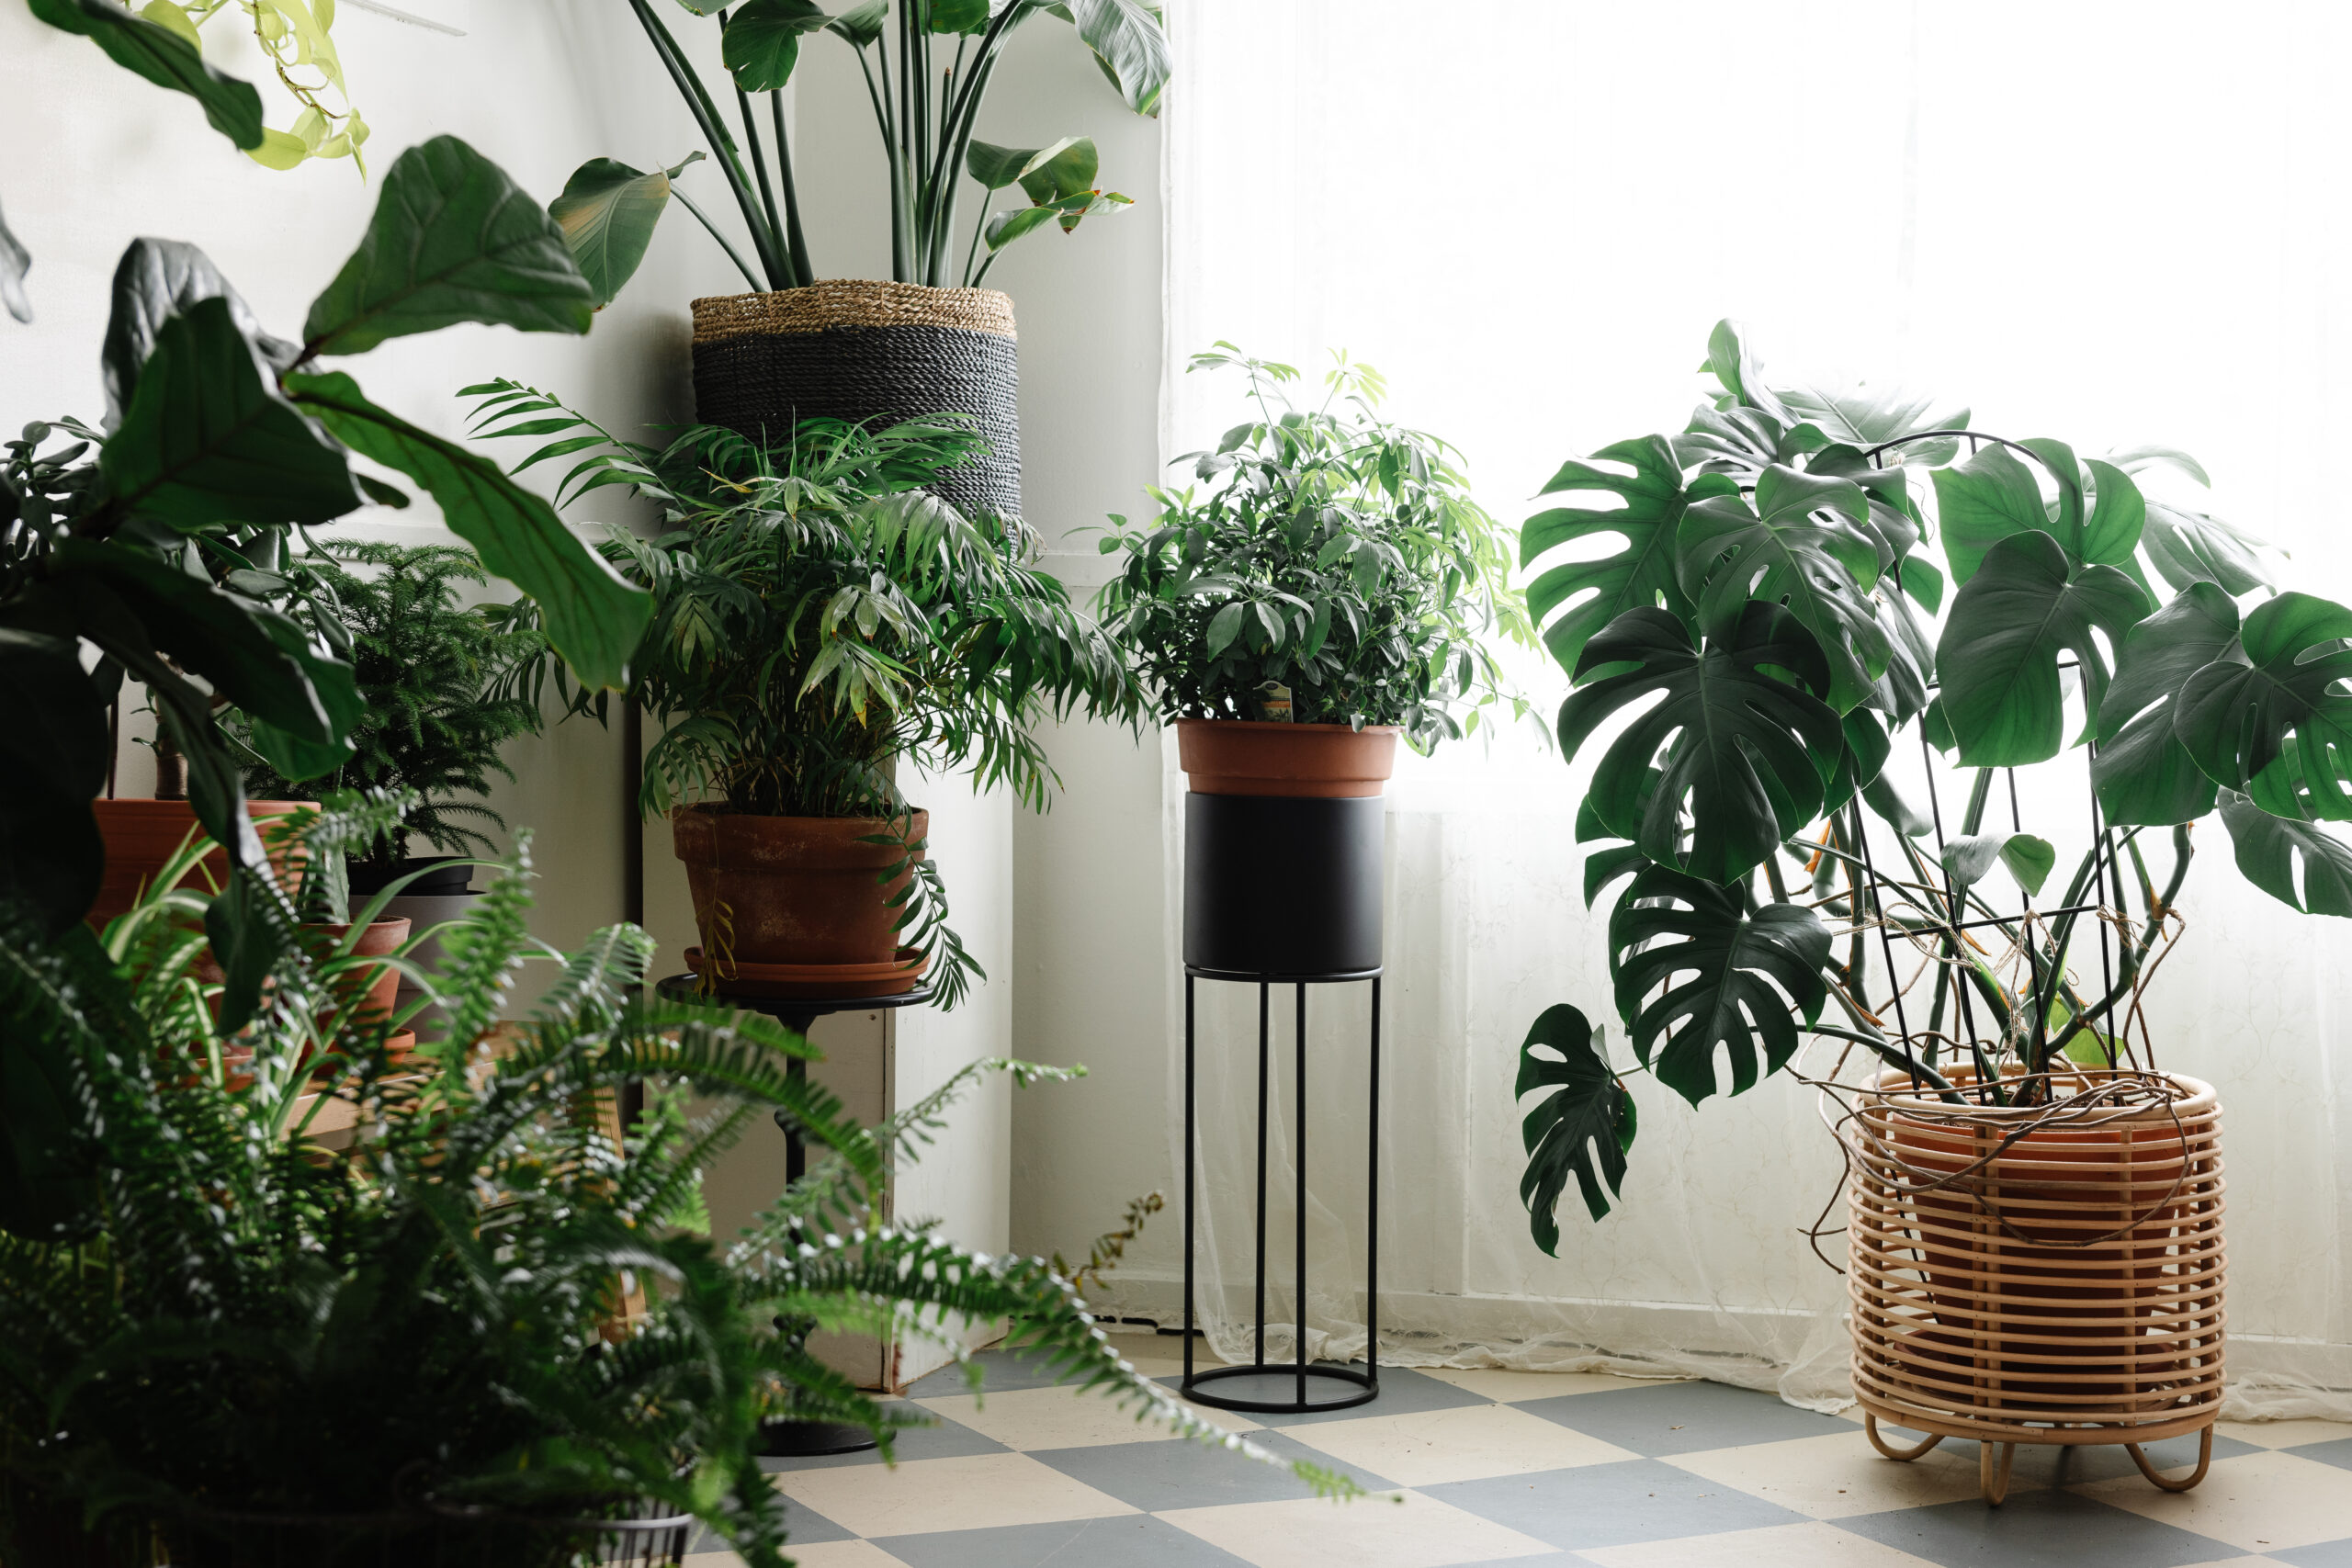 house plants, natural light and a checkered floor